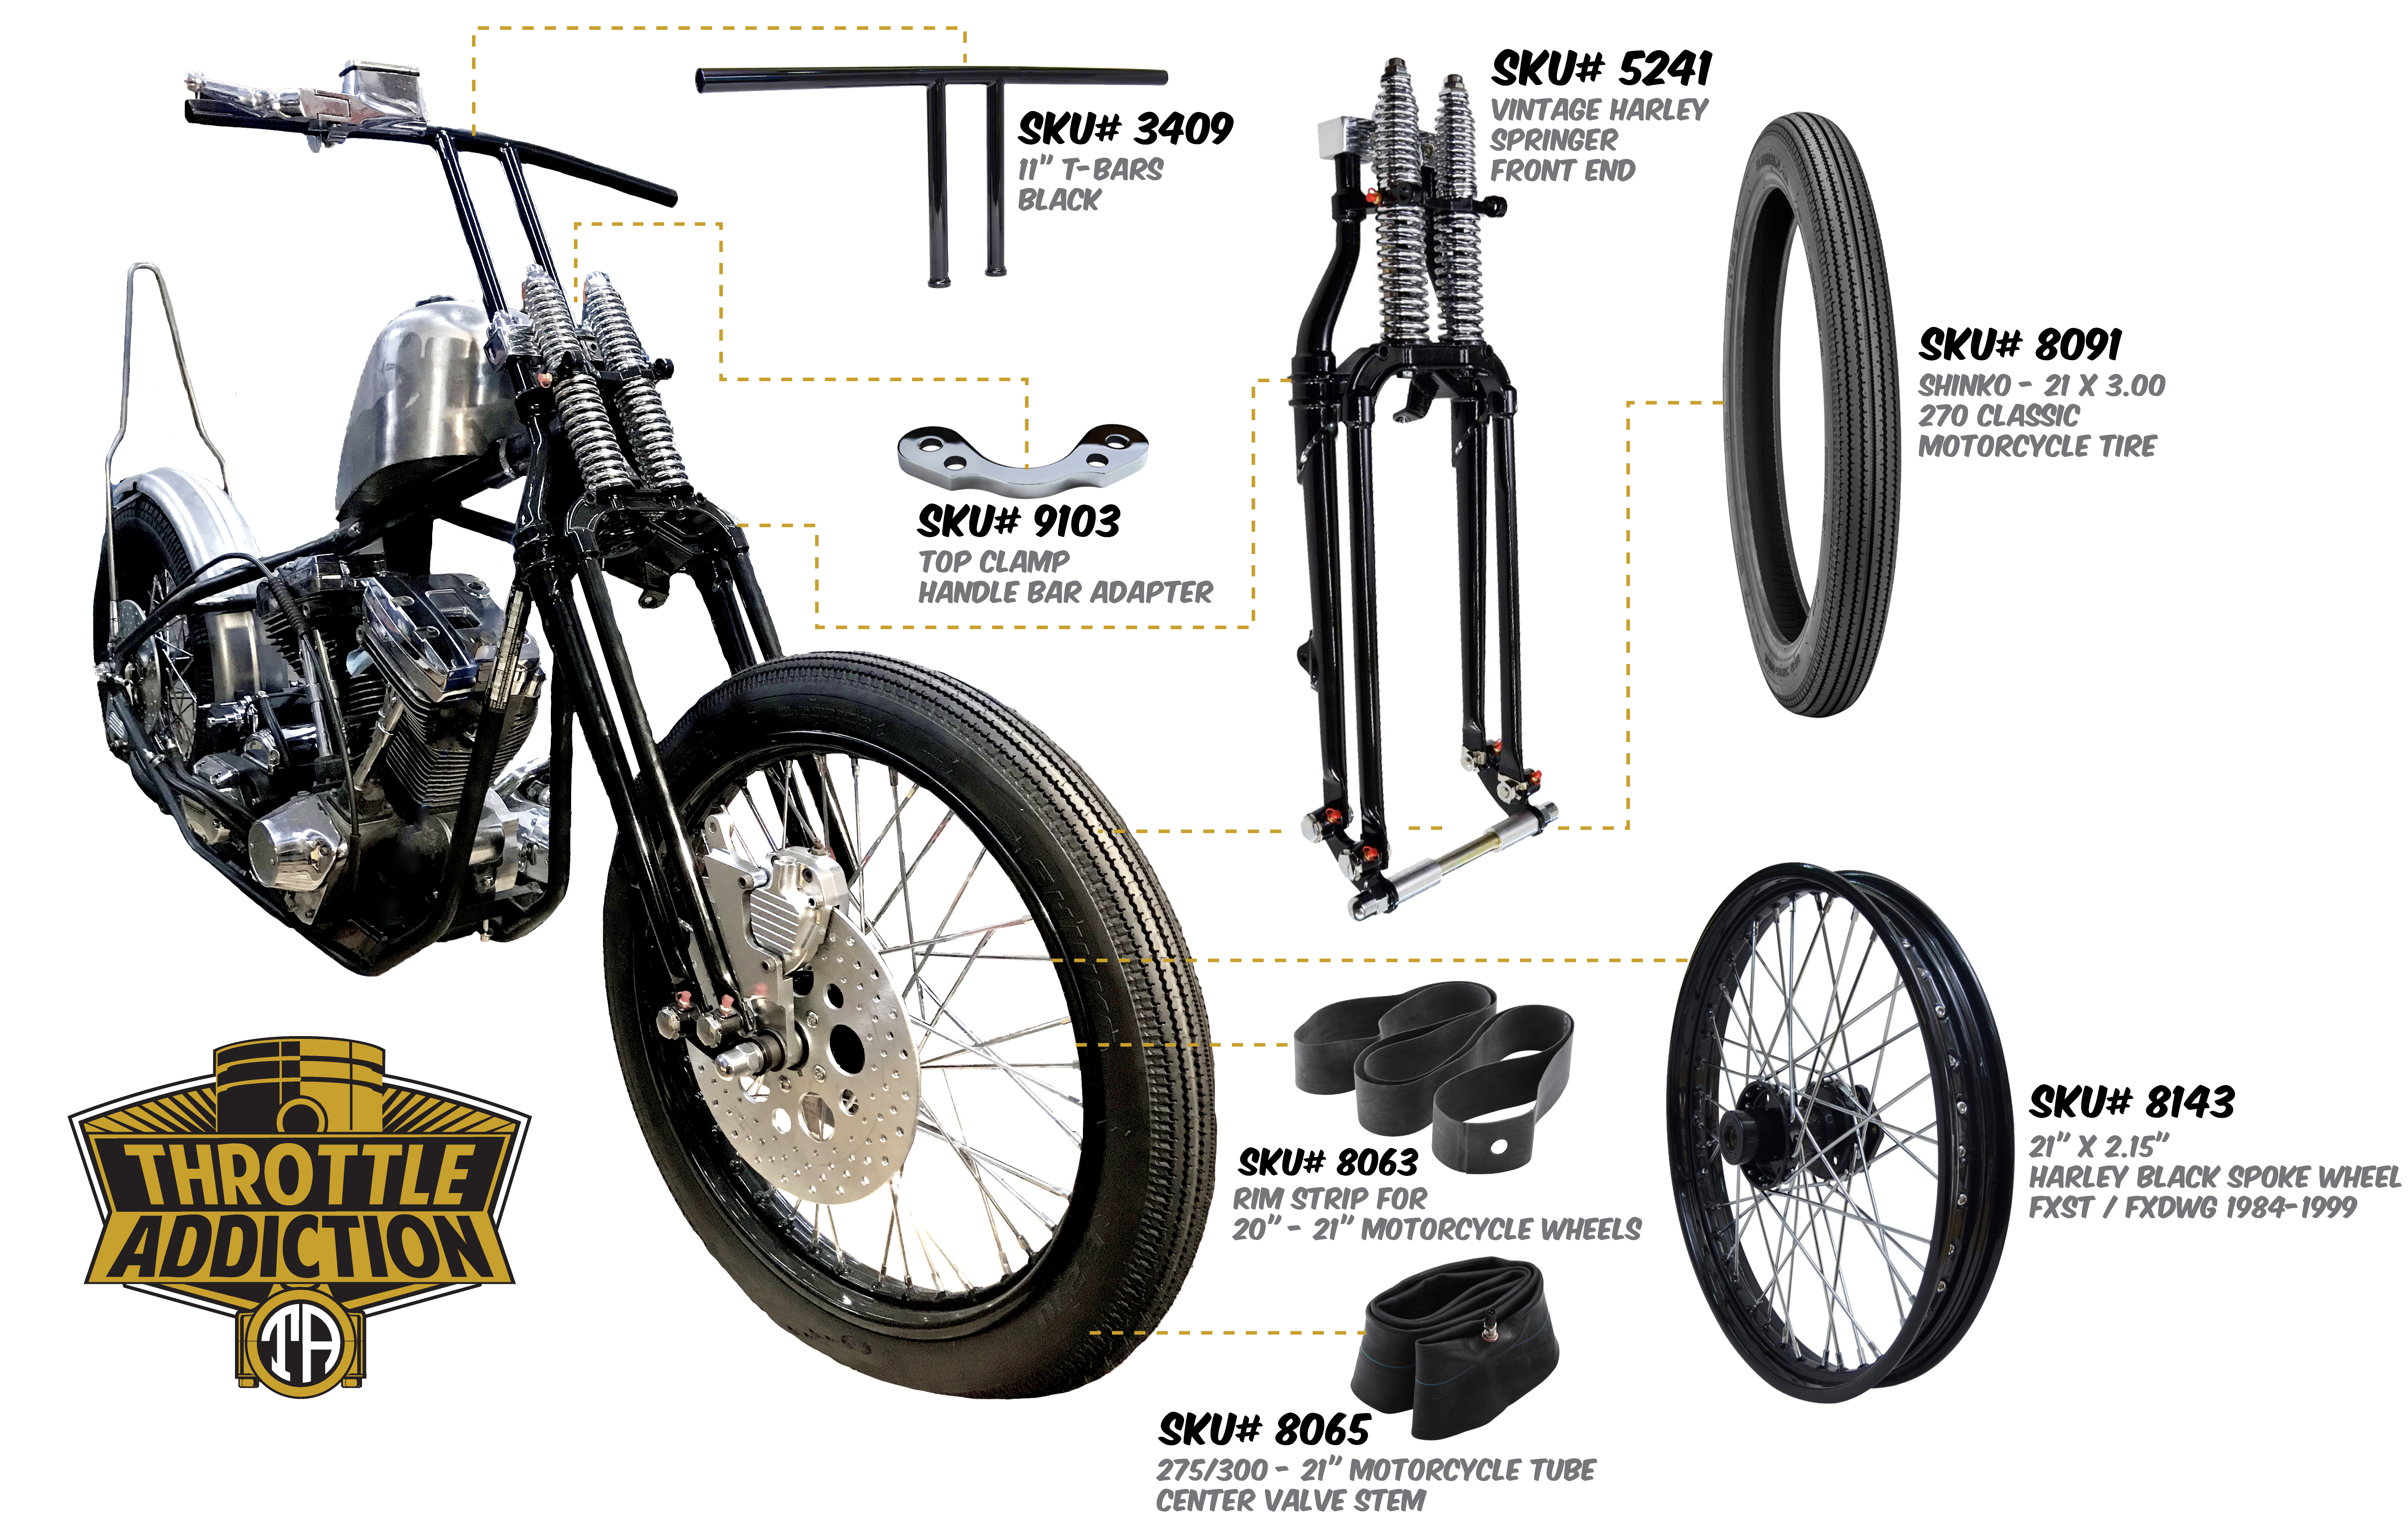 Installing A Springer Front End On Your Chopper Throttle Addiction